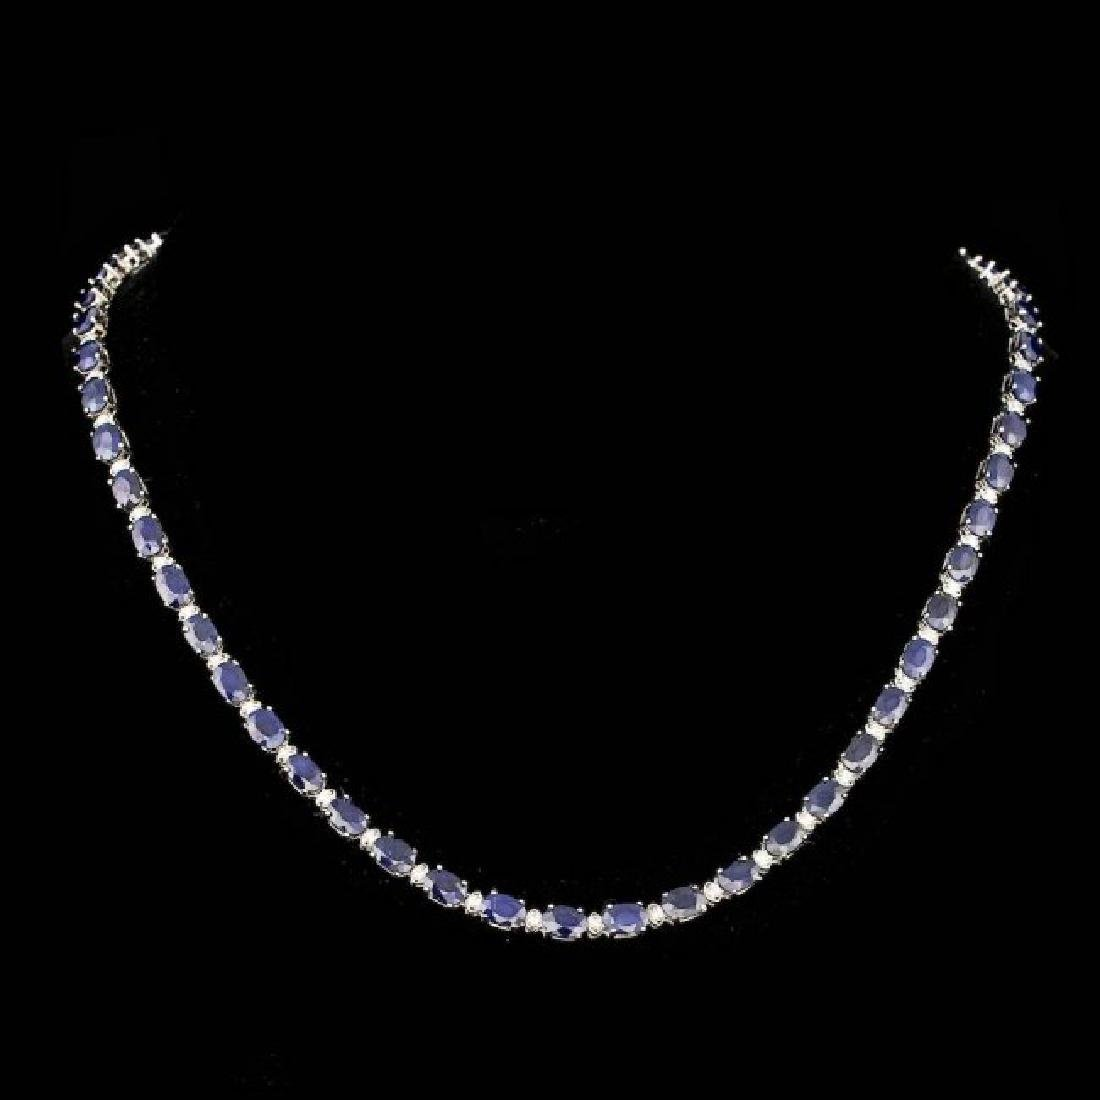 14k Gold 30.00ct Sapphire 1.35ct Diamond Necklace